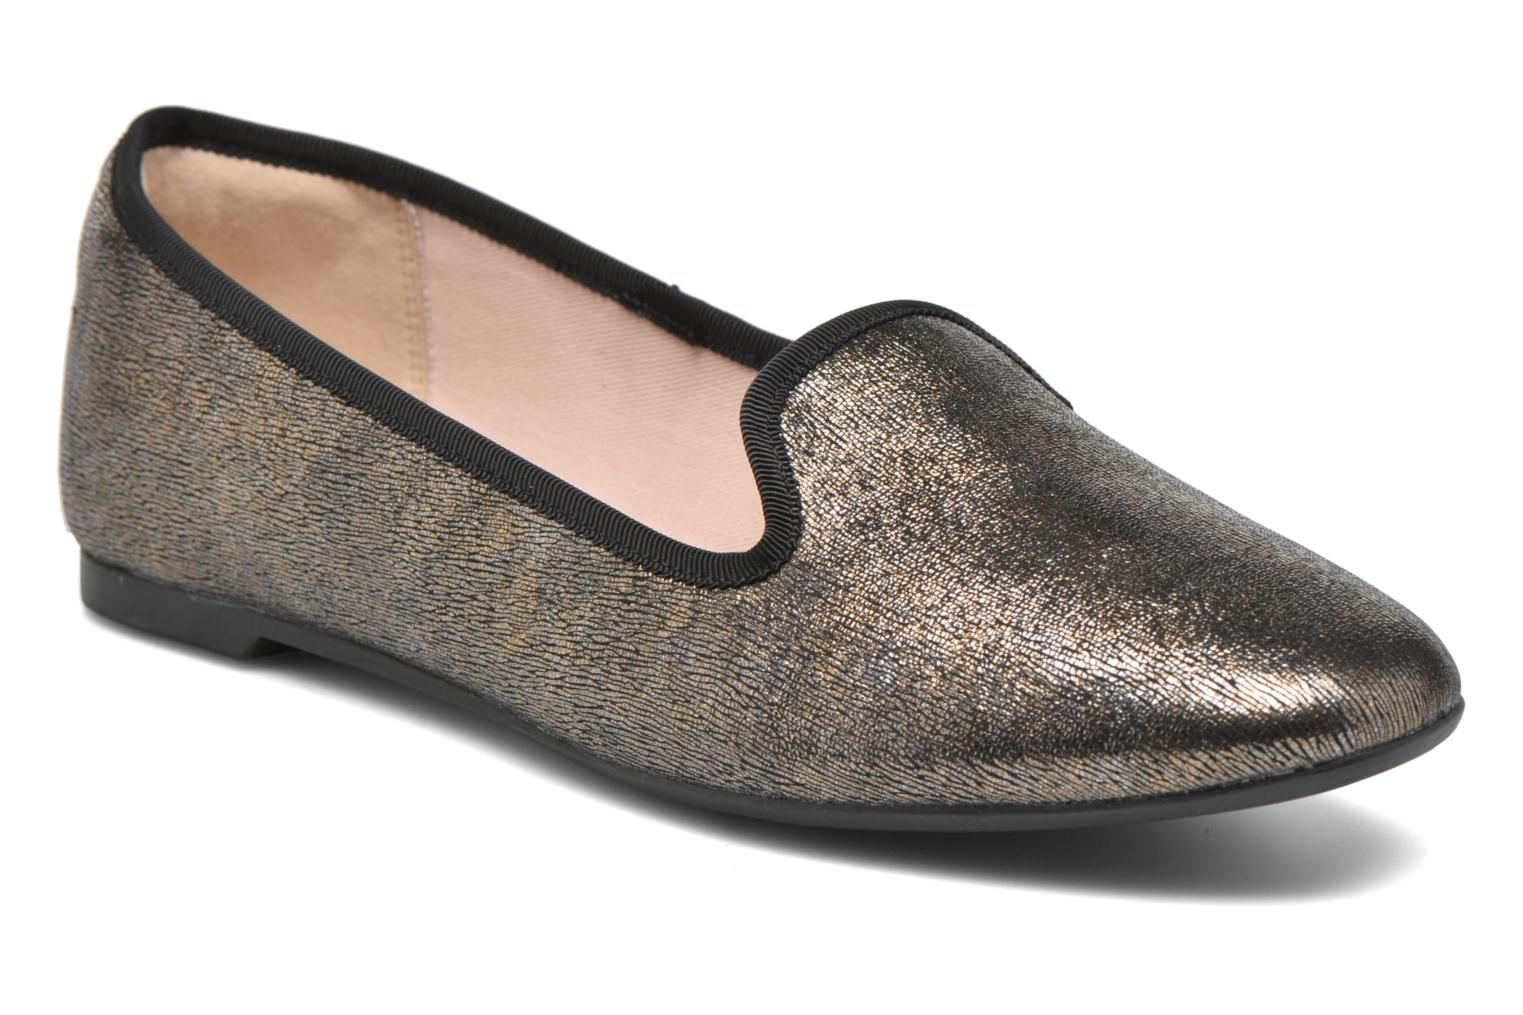 Marques Chaussure femme Clarks femme Chia Milly Bronze metallic